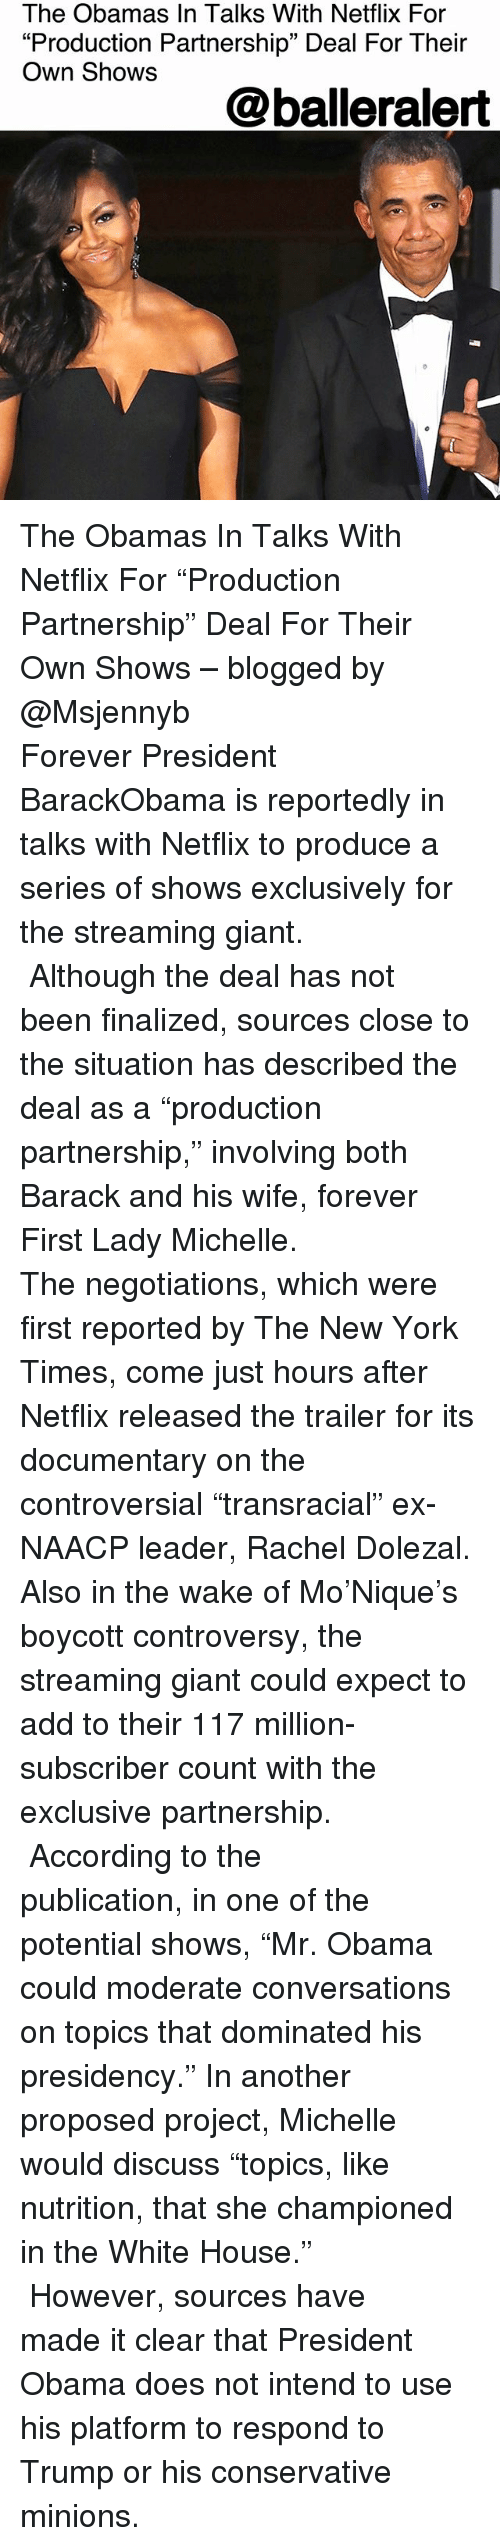 "Memes, Netflix, and New York: The Obamas In Talks With Netflix For  ""Production Partnership"" Deal For Their  Own Shows  @balleralert The Obamas In Talks With Netflix For ""Production Partnership"" Deal For Their Own Shows – blogged by @Msjennyb ⠀⠀⠀⠀⠀⠀⠀⠀⠀ ⠀⠀⠀⠀⠀⠀⠀⠀⠀ Forever President BarackObama is reportedly in talks with Netflix to produce a series of shows exclusively for the streaming giant. ⠀⠀⠀⠀⠀⠀⠀⠀⠀ ⠀⠀⠀⠀⠀⠀⠀⠀⠀ Although the deal has not been finalized, sources close to the situation has described the deal as a ""production partnership,"" involving both Barack and his wife, forever First Lady Michelle. ⠀⠀⠀⠀⠀⠀⠀⠀⠀ ⠀⠀⠀⠀⠀⠀⠀⠀⠀ The negotiations, which were first reported by The New York Times, come just hours after Netflix released the trailer for its documentary on the controversial ""transracial"" ex-NAACP leader, Rachel Dolezal. Also in the wake of Mo'Nique's boycott controversy, the streaming giant could expect to add to their 117 million-subscriber count with the exclusive partnership. ⠀⠀⠀⠀⠀⠀⠀⠀⠀ ⠀⠀⠀⠀⠀⠀⠀⠀⠀ According to the publication, in one of the potential shows, ""Mr. Obama could moderate conversations on topics that dominated his presidency."" In another proposed project, Michelle would discuss ""topics, like nutrition, that she championed in the White House."" ⠀⠀⠀⠀⠀⠀⠀⠀⠀ ⠀⠀⠀⠀⠀⠀⠀⠀⠀ However, sources have made it clear that President Obama does not intend to use his platform to respond to Trump or his conservative minions."